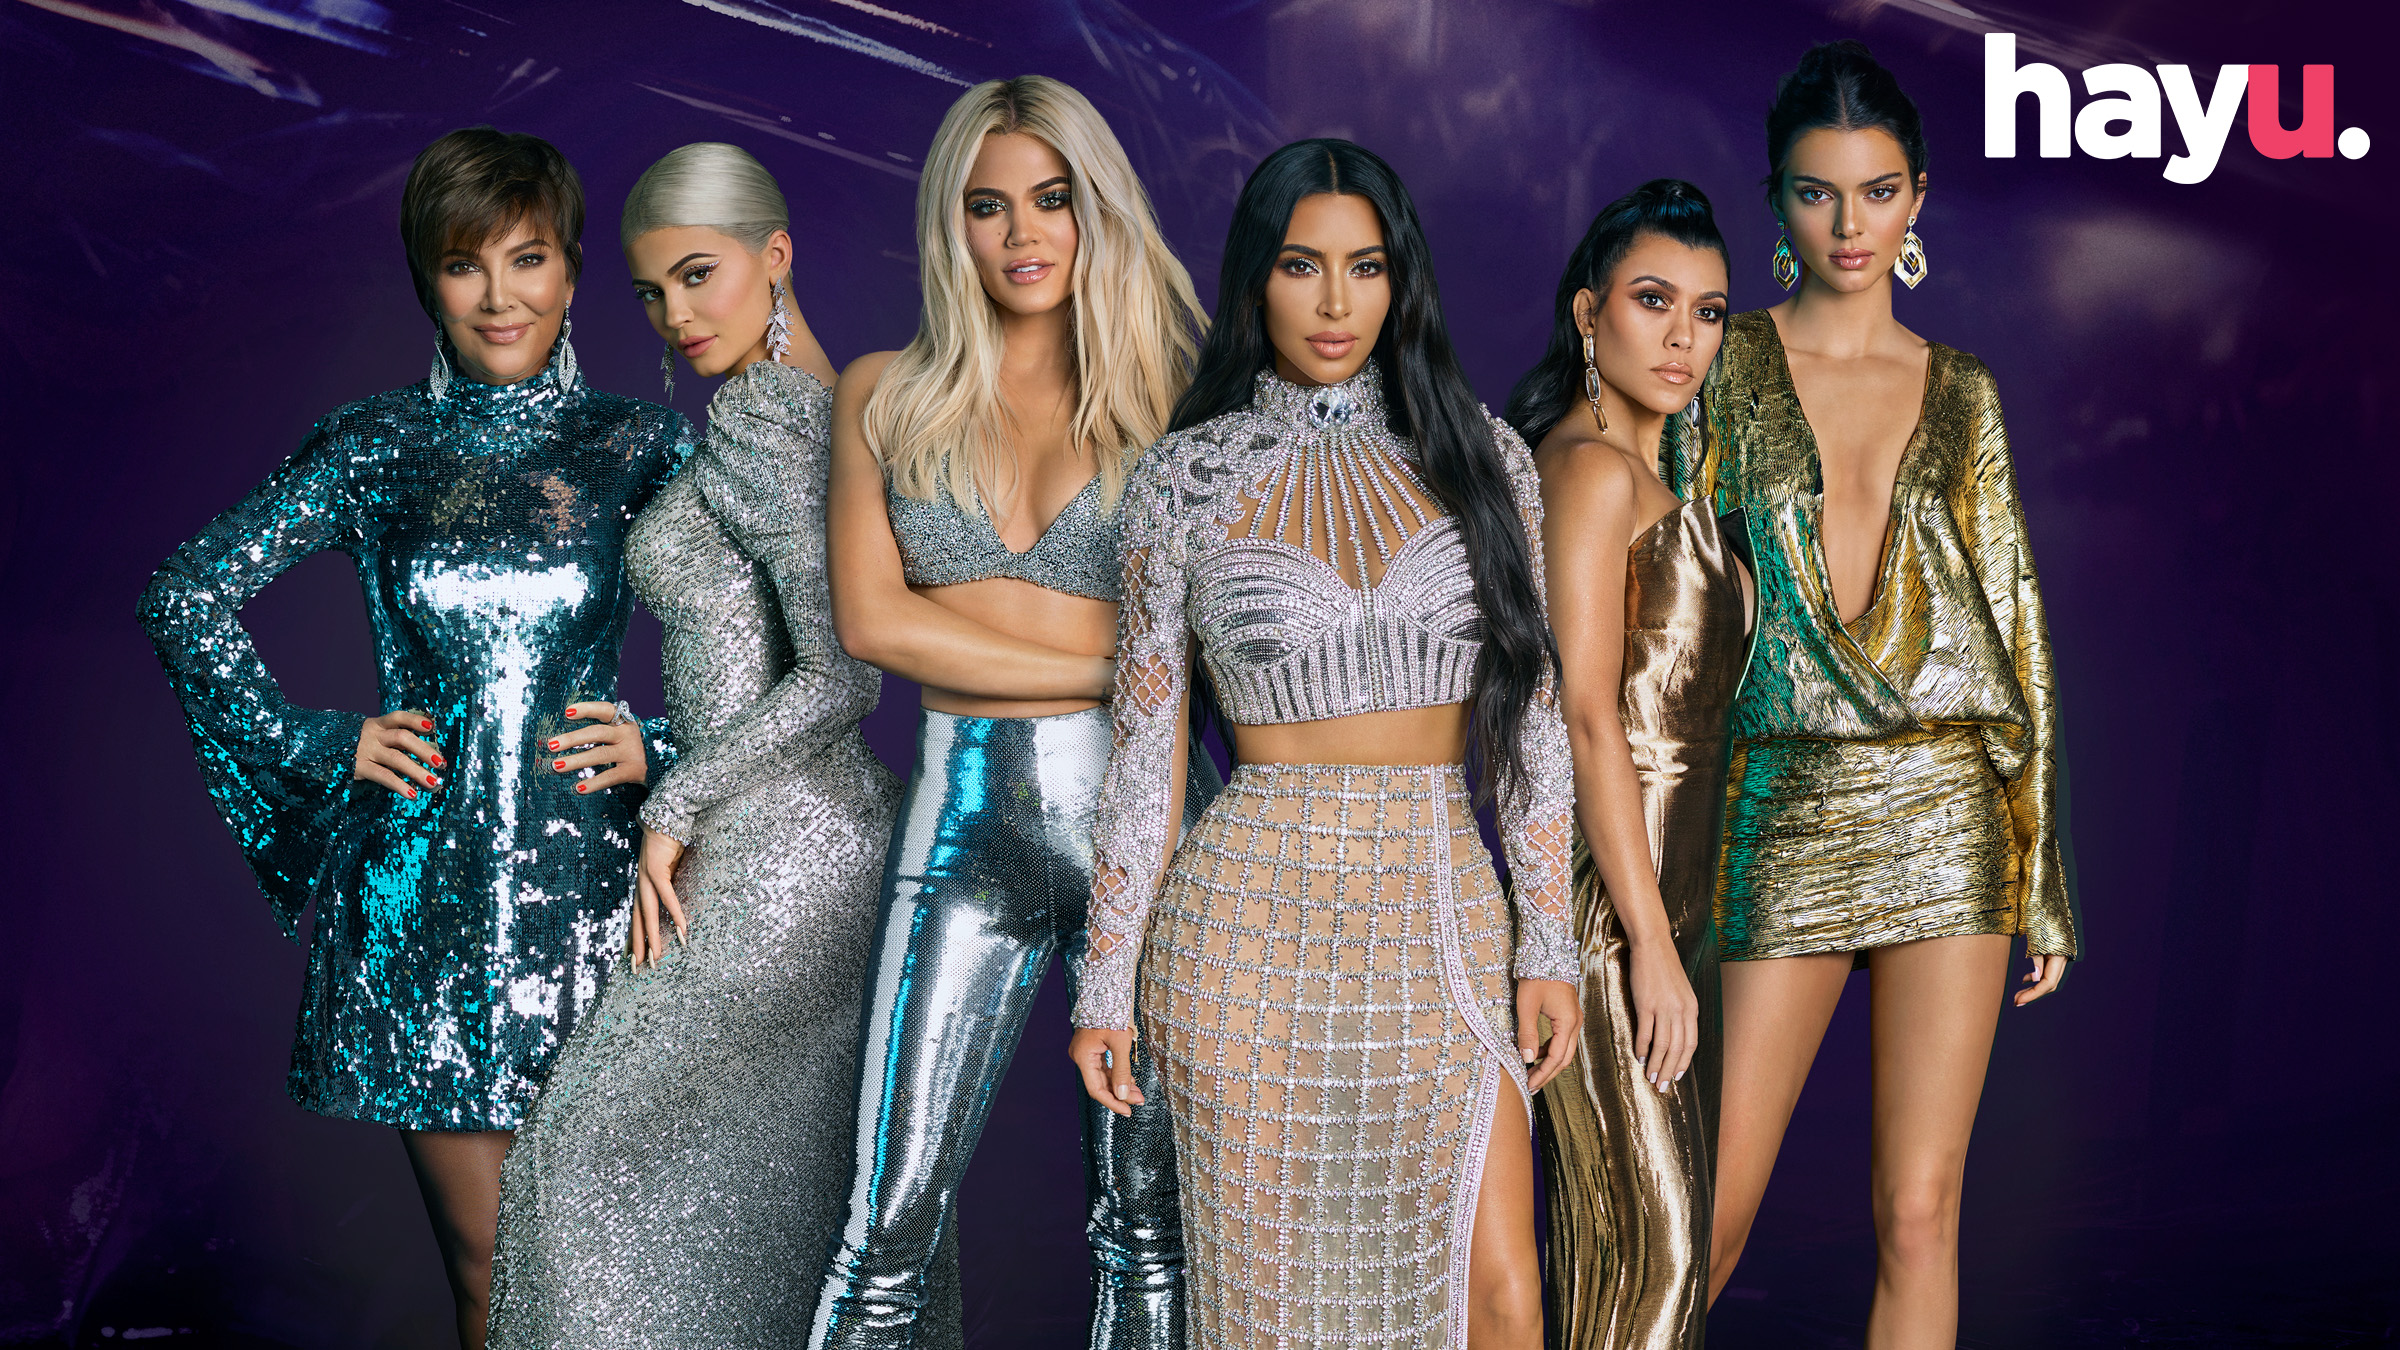 Ny sæson af Keeping up with the Kardashians (Foto: Target PR)